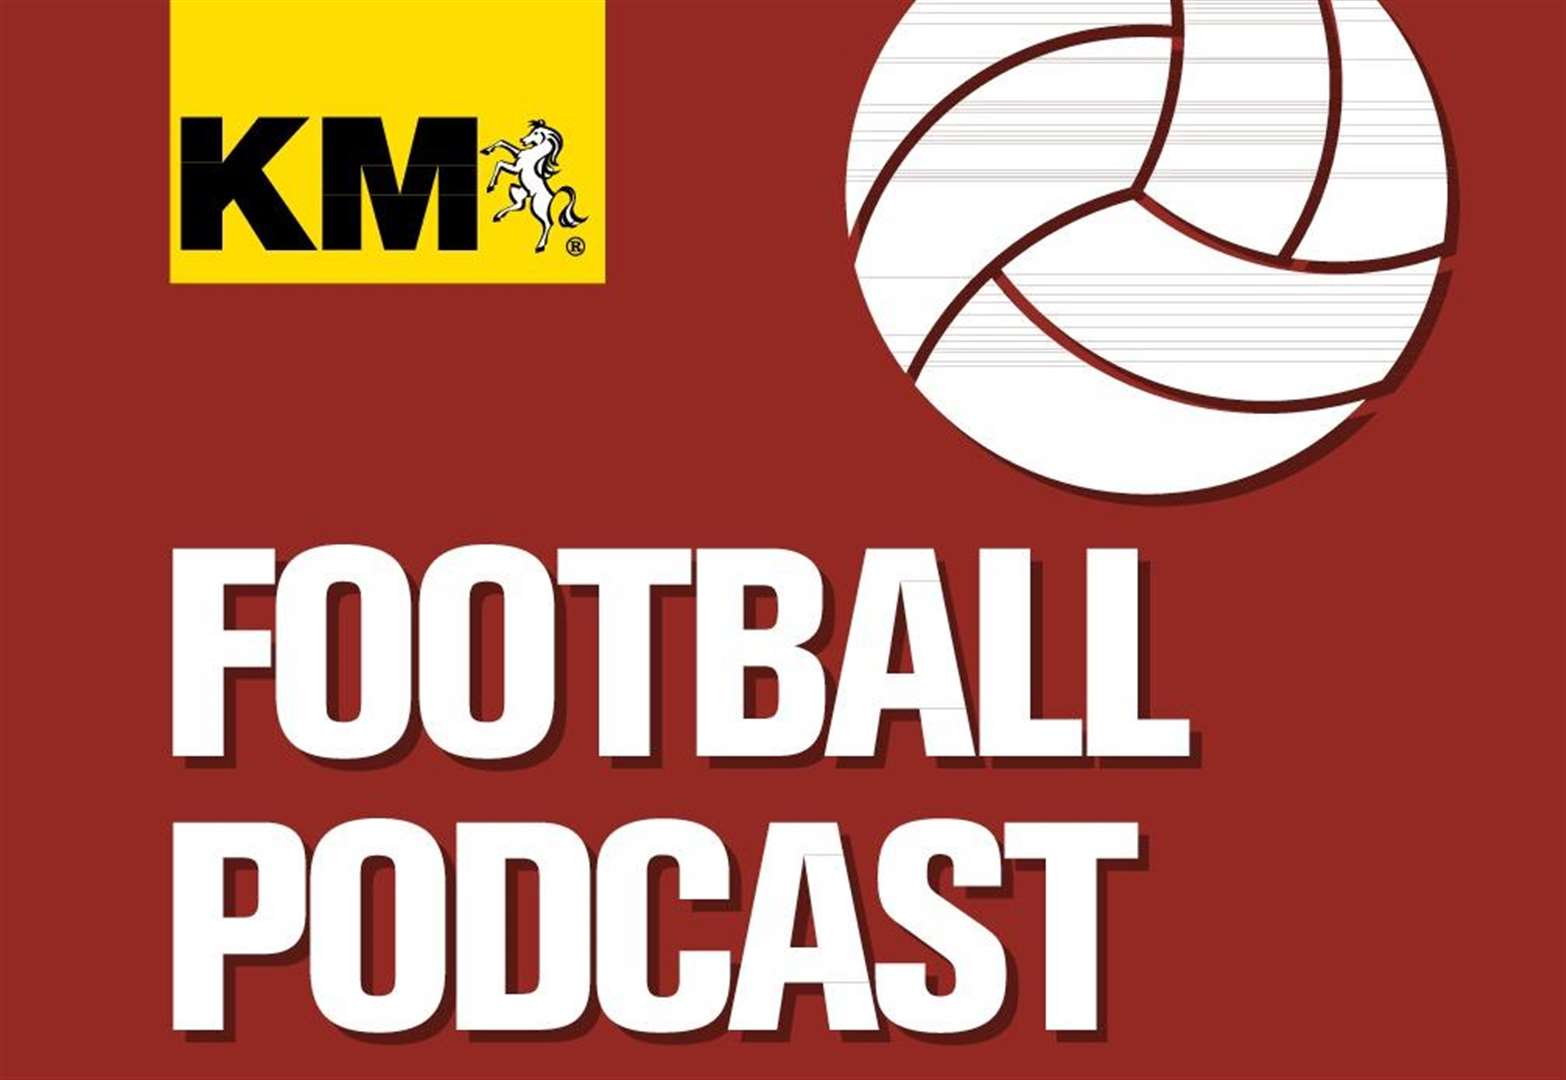 KM Football Podcast: Gills win and the road to Wembley starts